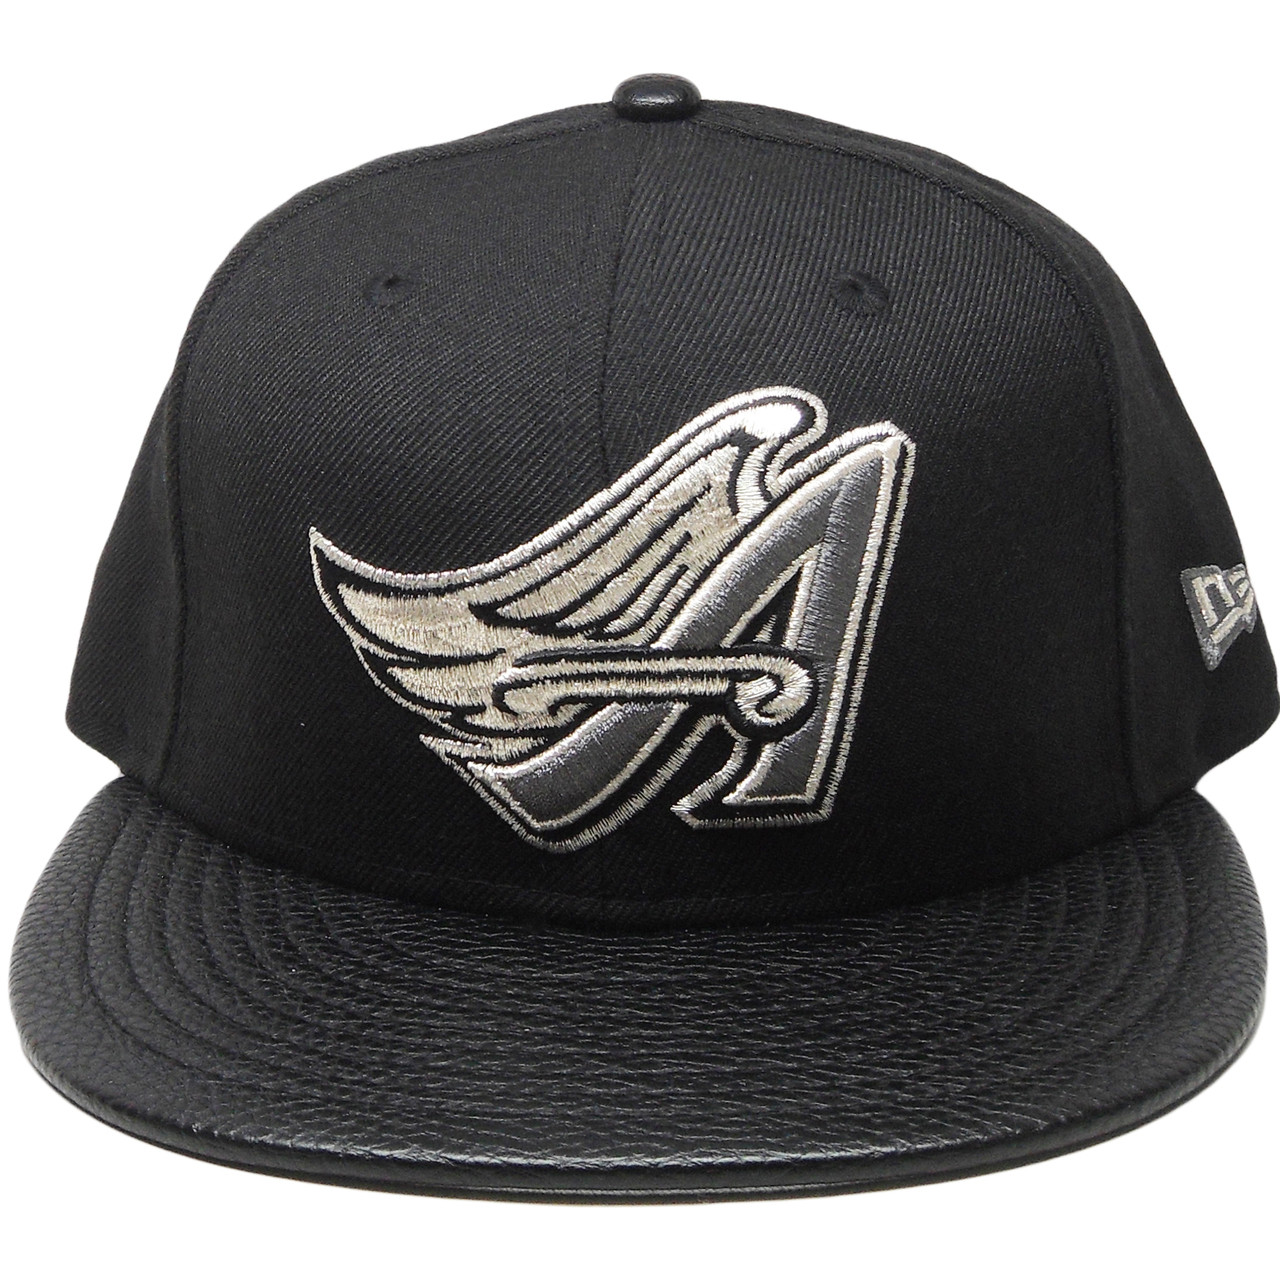 008ddb8b384764 Anaheim Angels New Era Custom 59Fifty Fitted Hat - Black